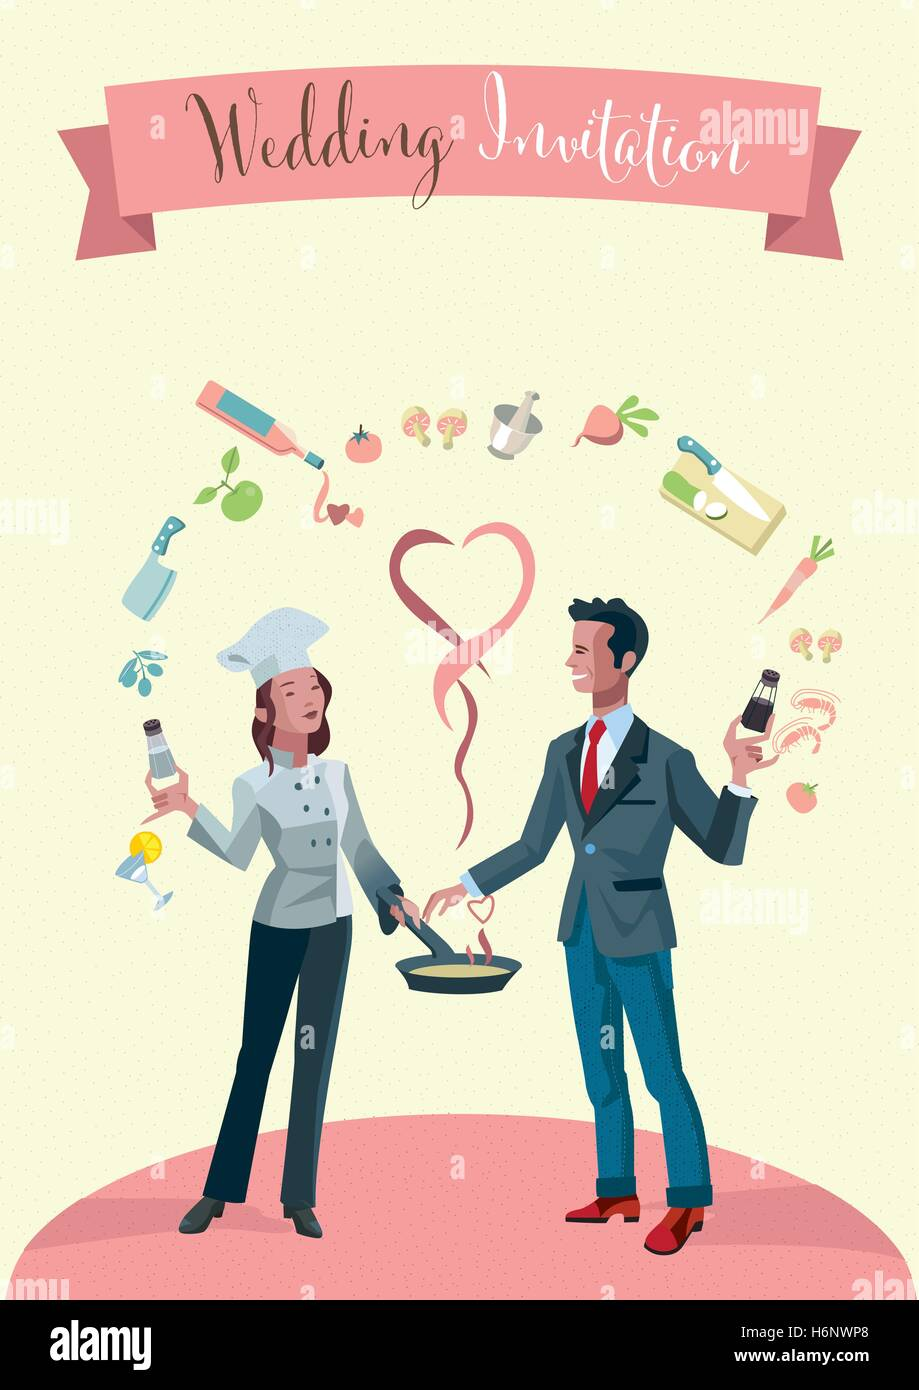 Wedding invitation. A young married couple dressed as chefs. Around them tasty food products. - Stock Image